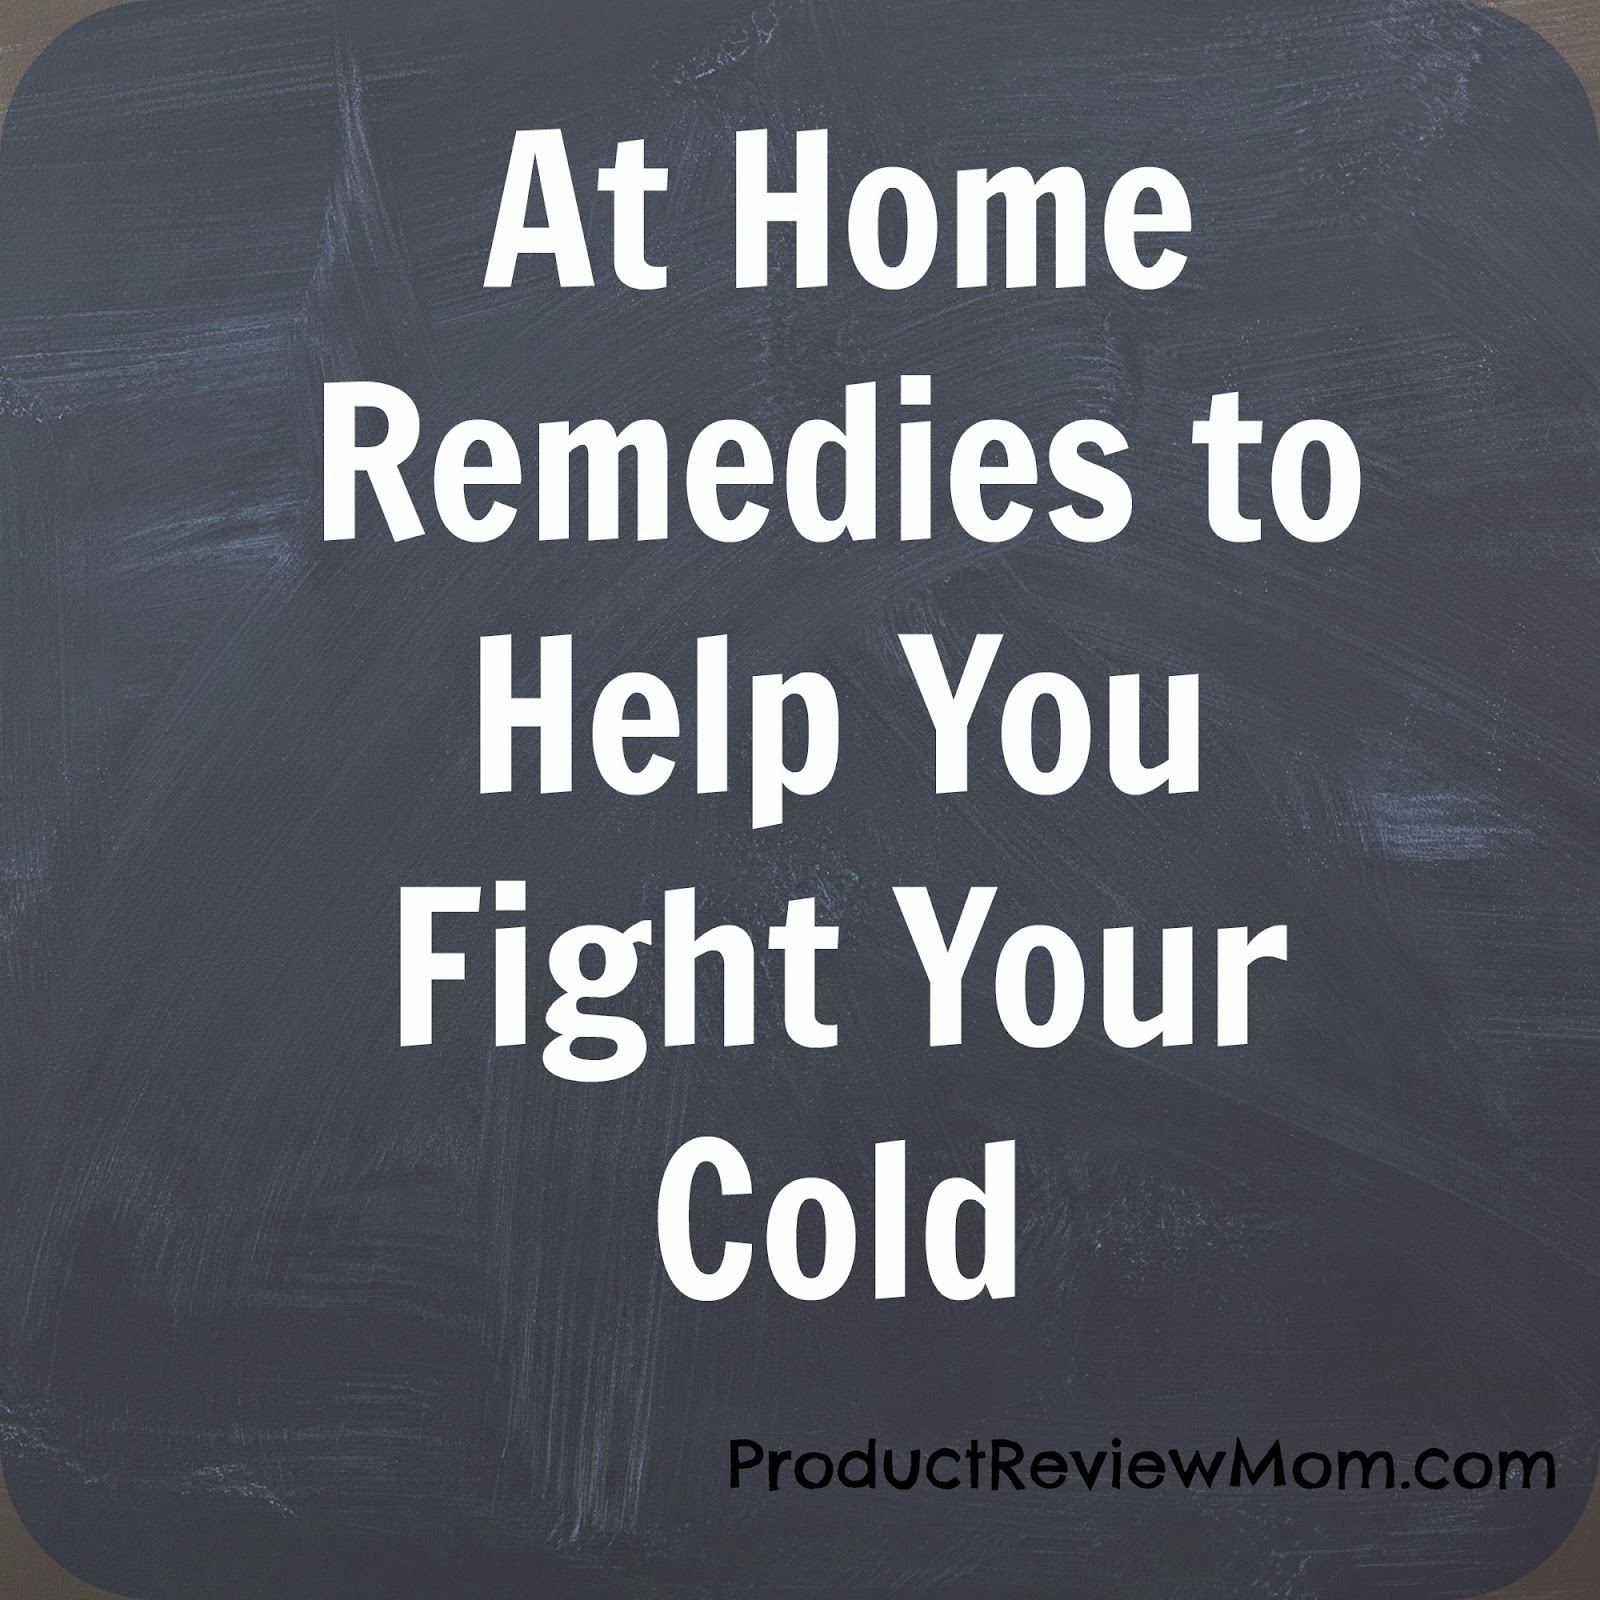 At Home Remedies to Help You Fight Your Cold via www.productreviewmom.com